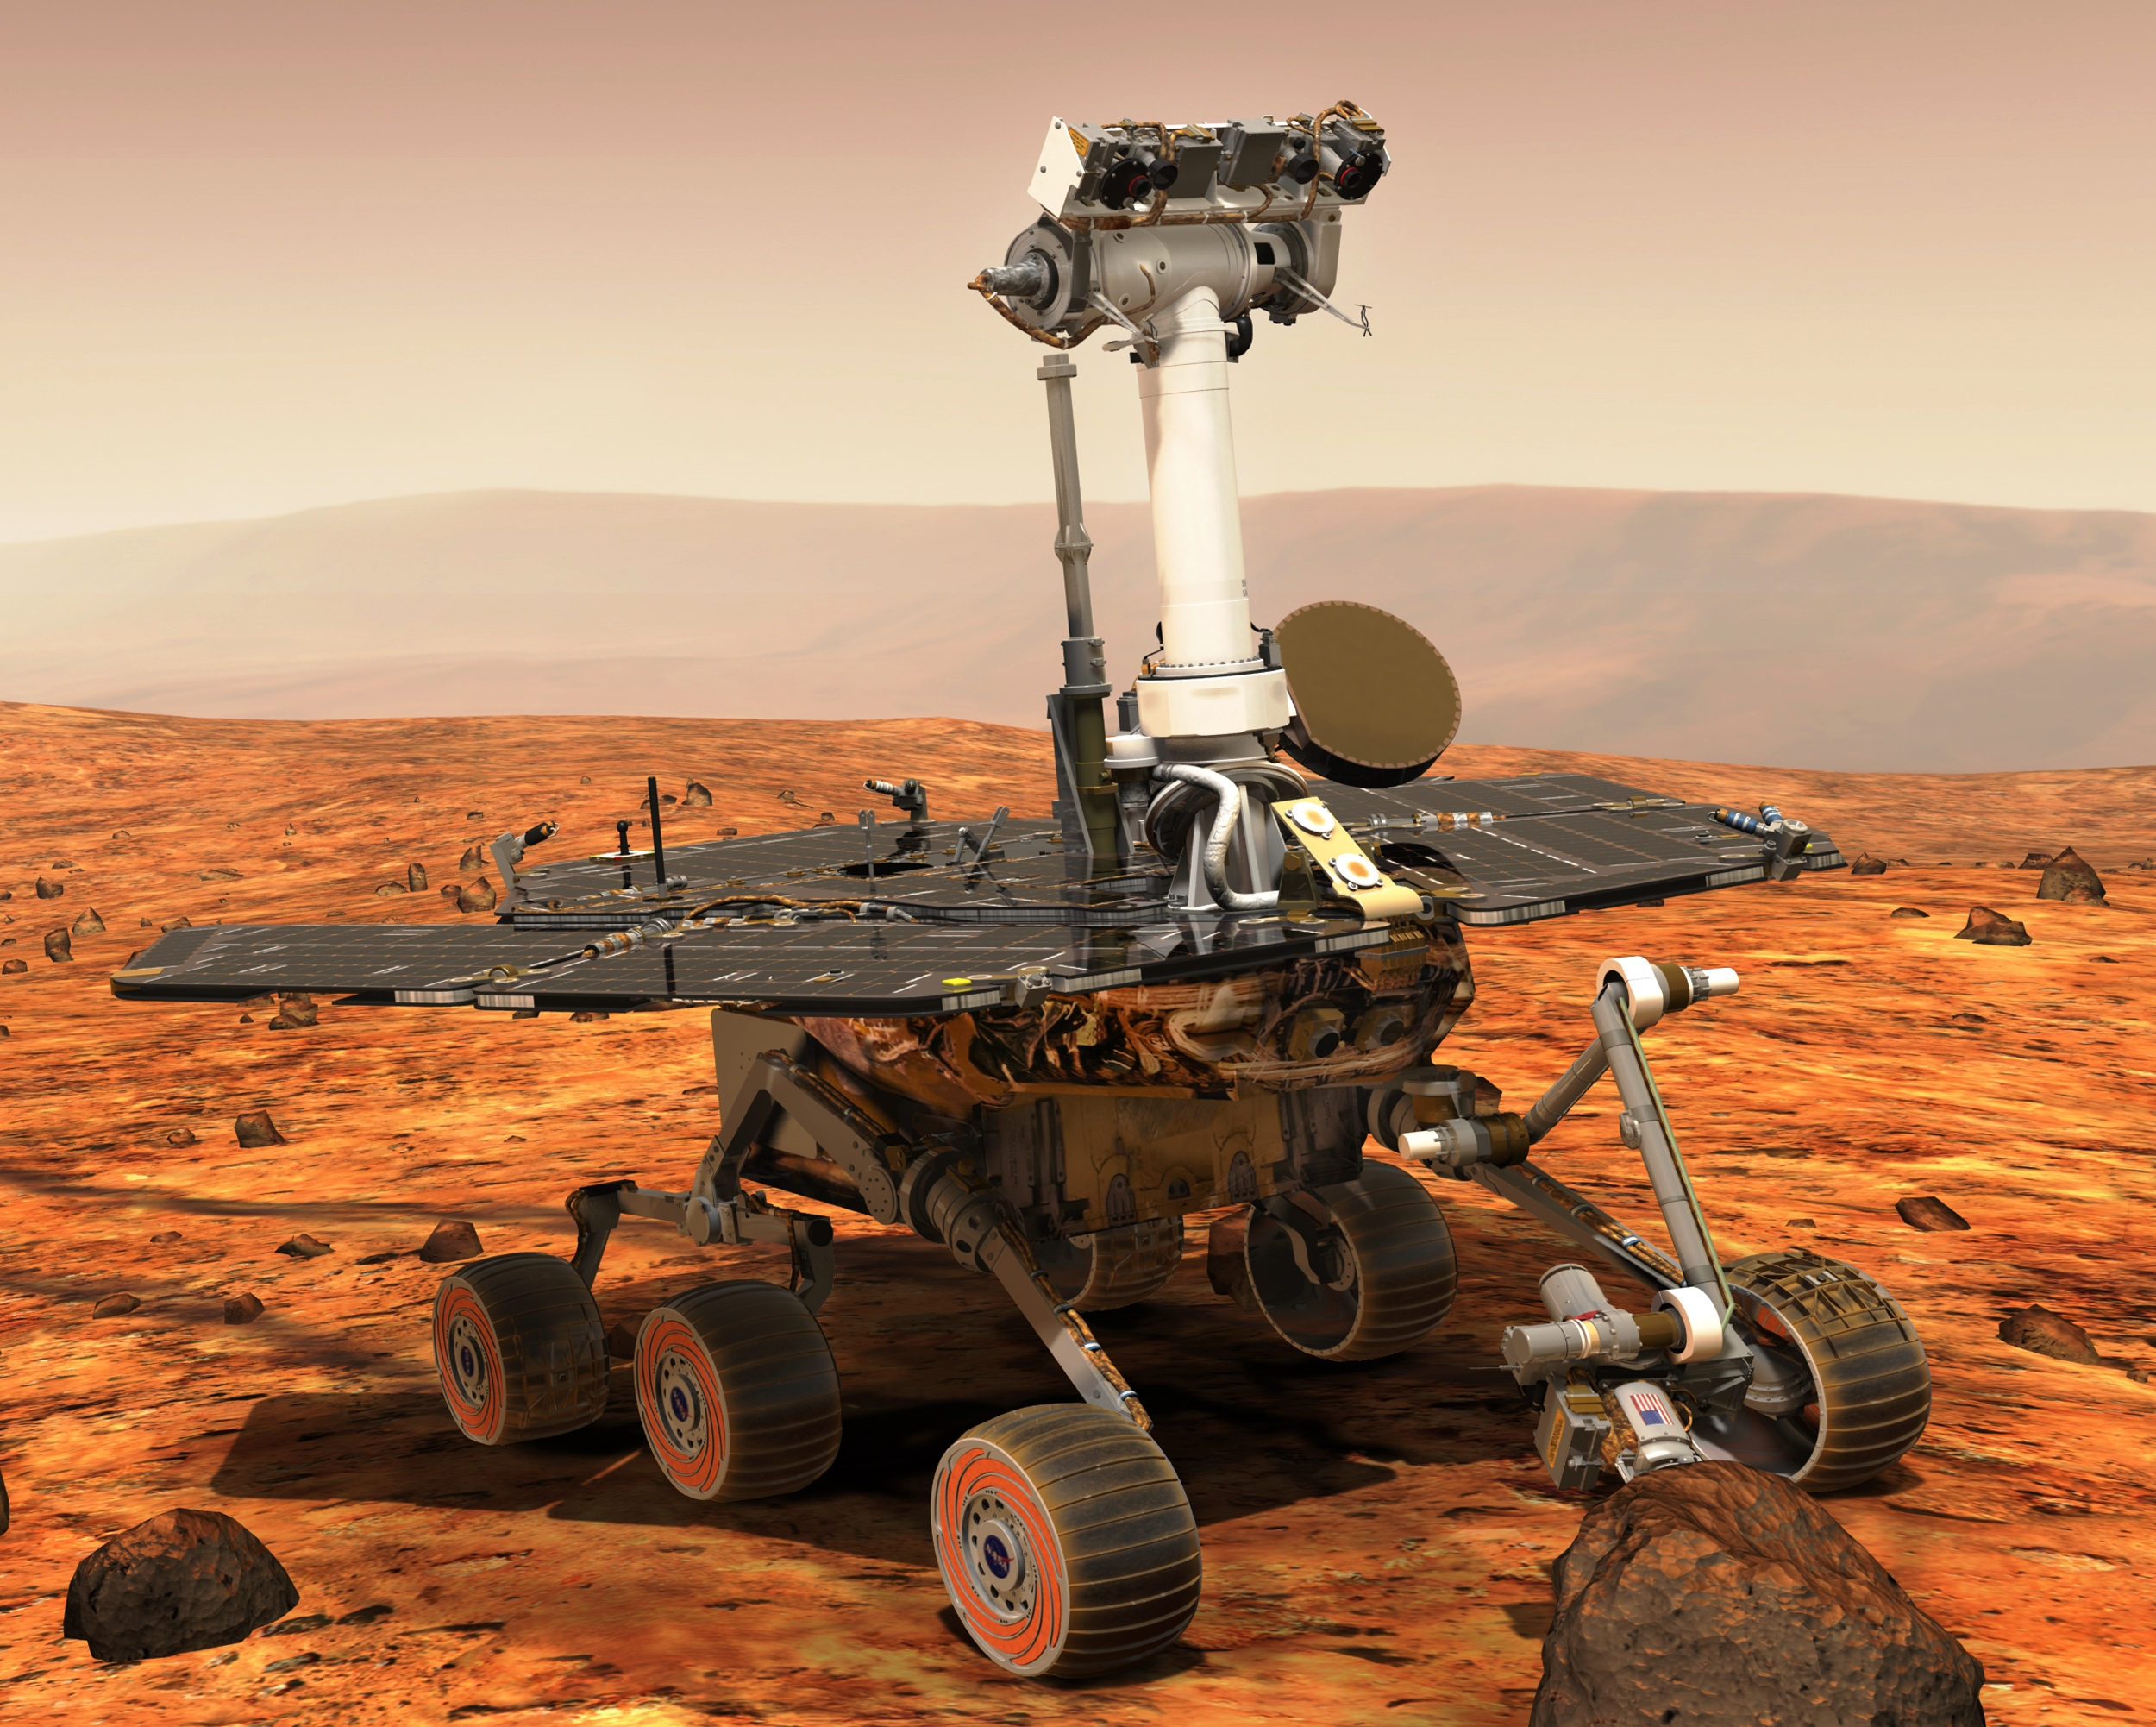 Opportunity by NASA